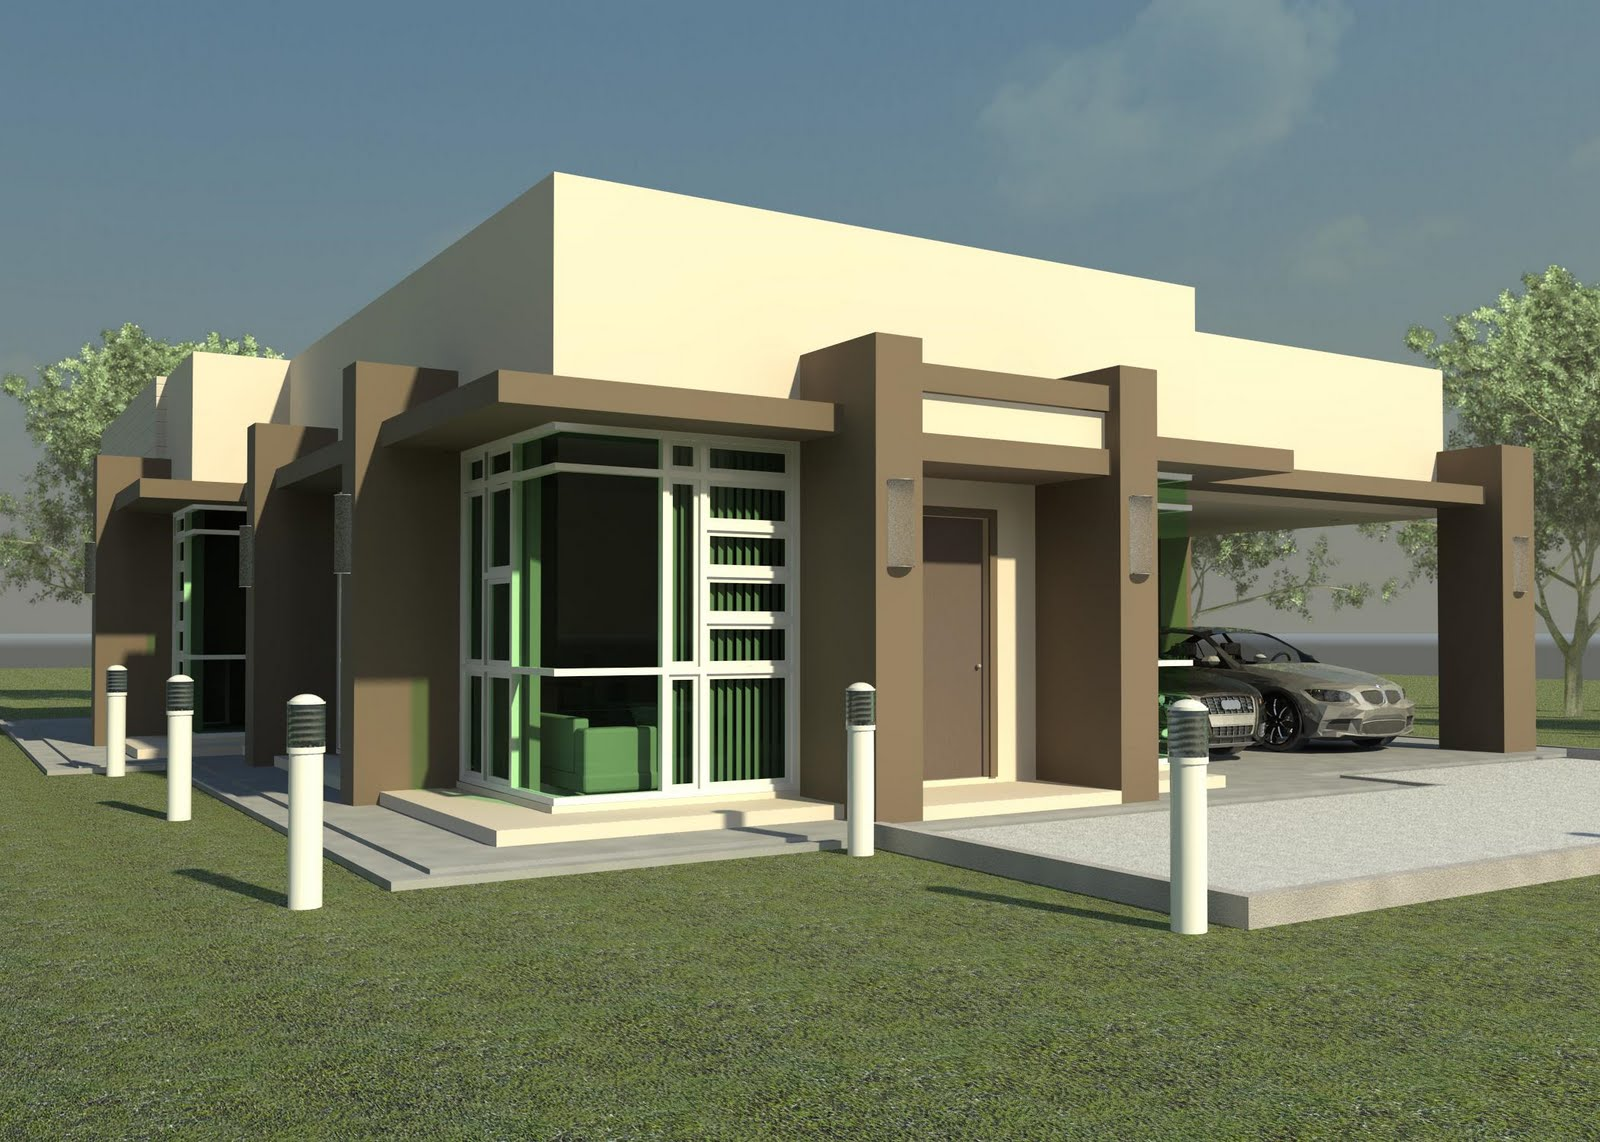 New home designs latest modern small homes designs exterior for Small contemporary house